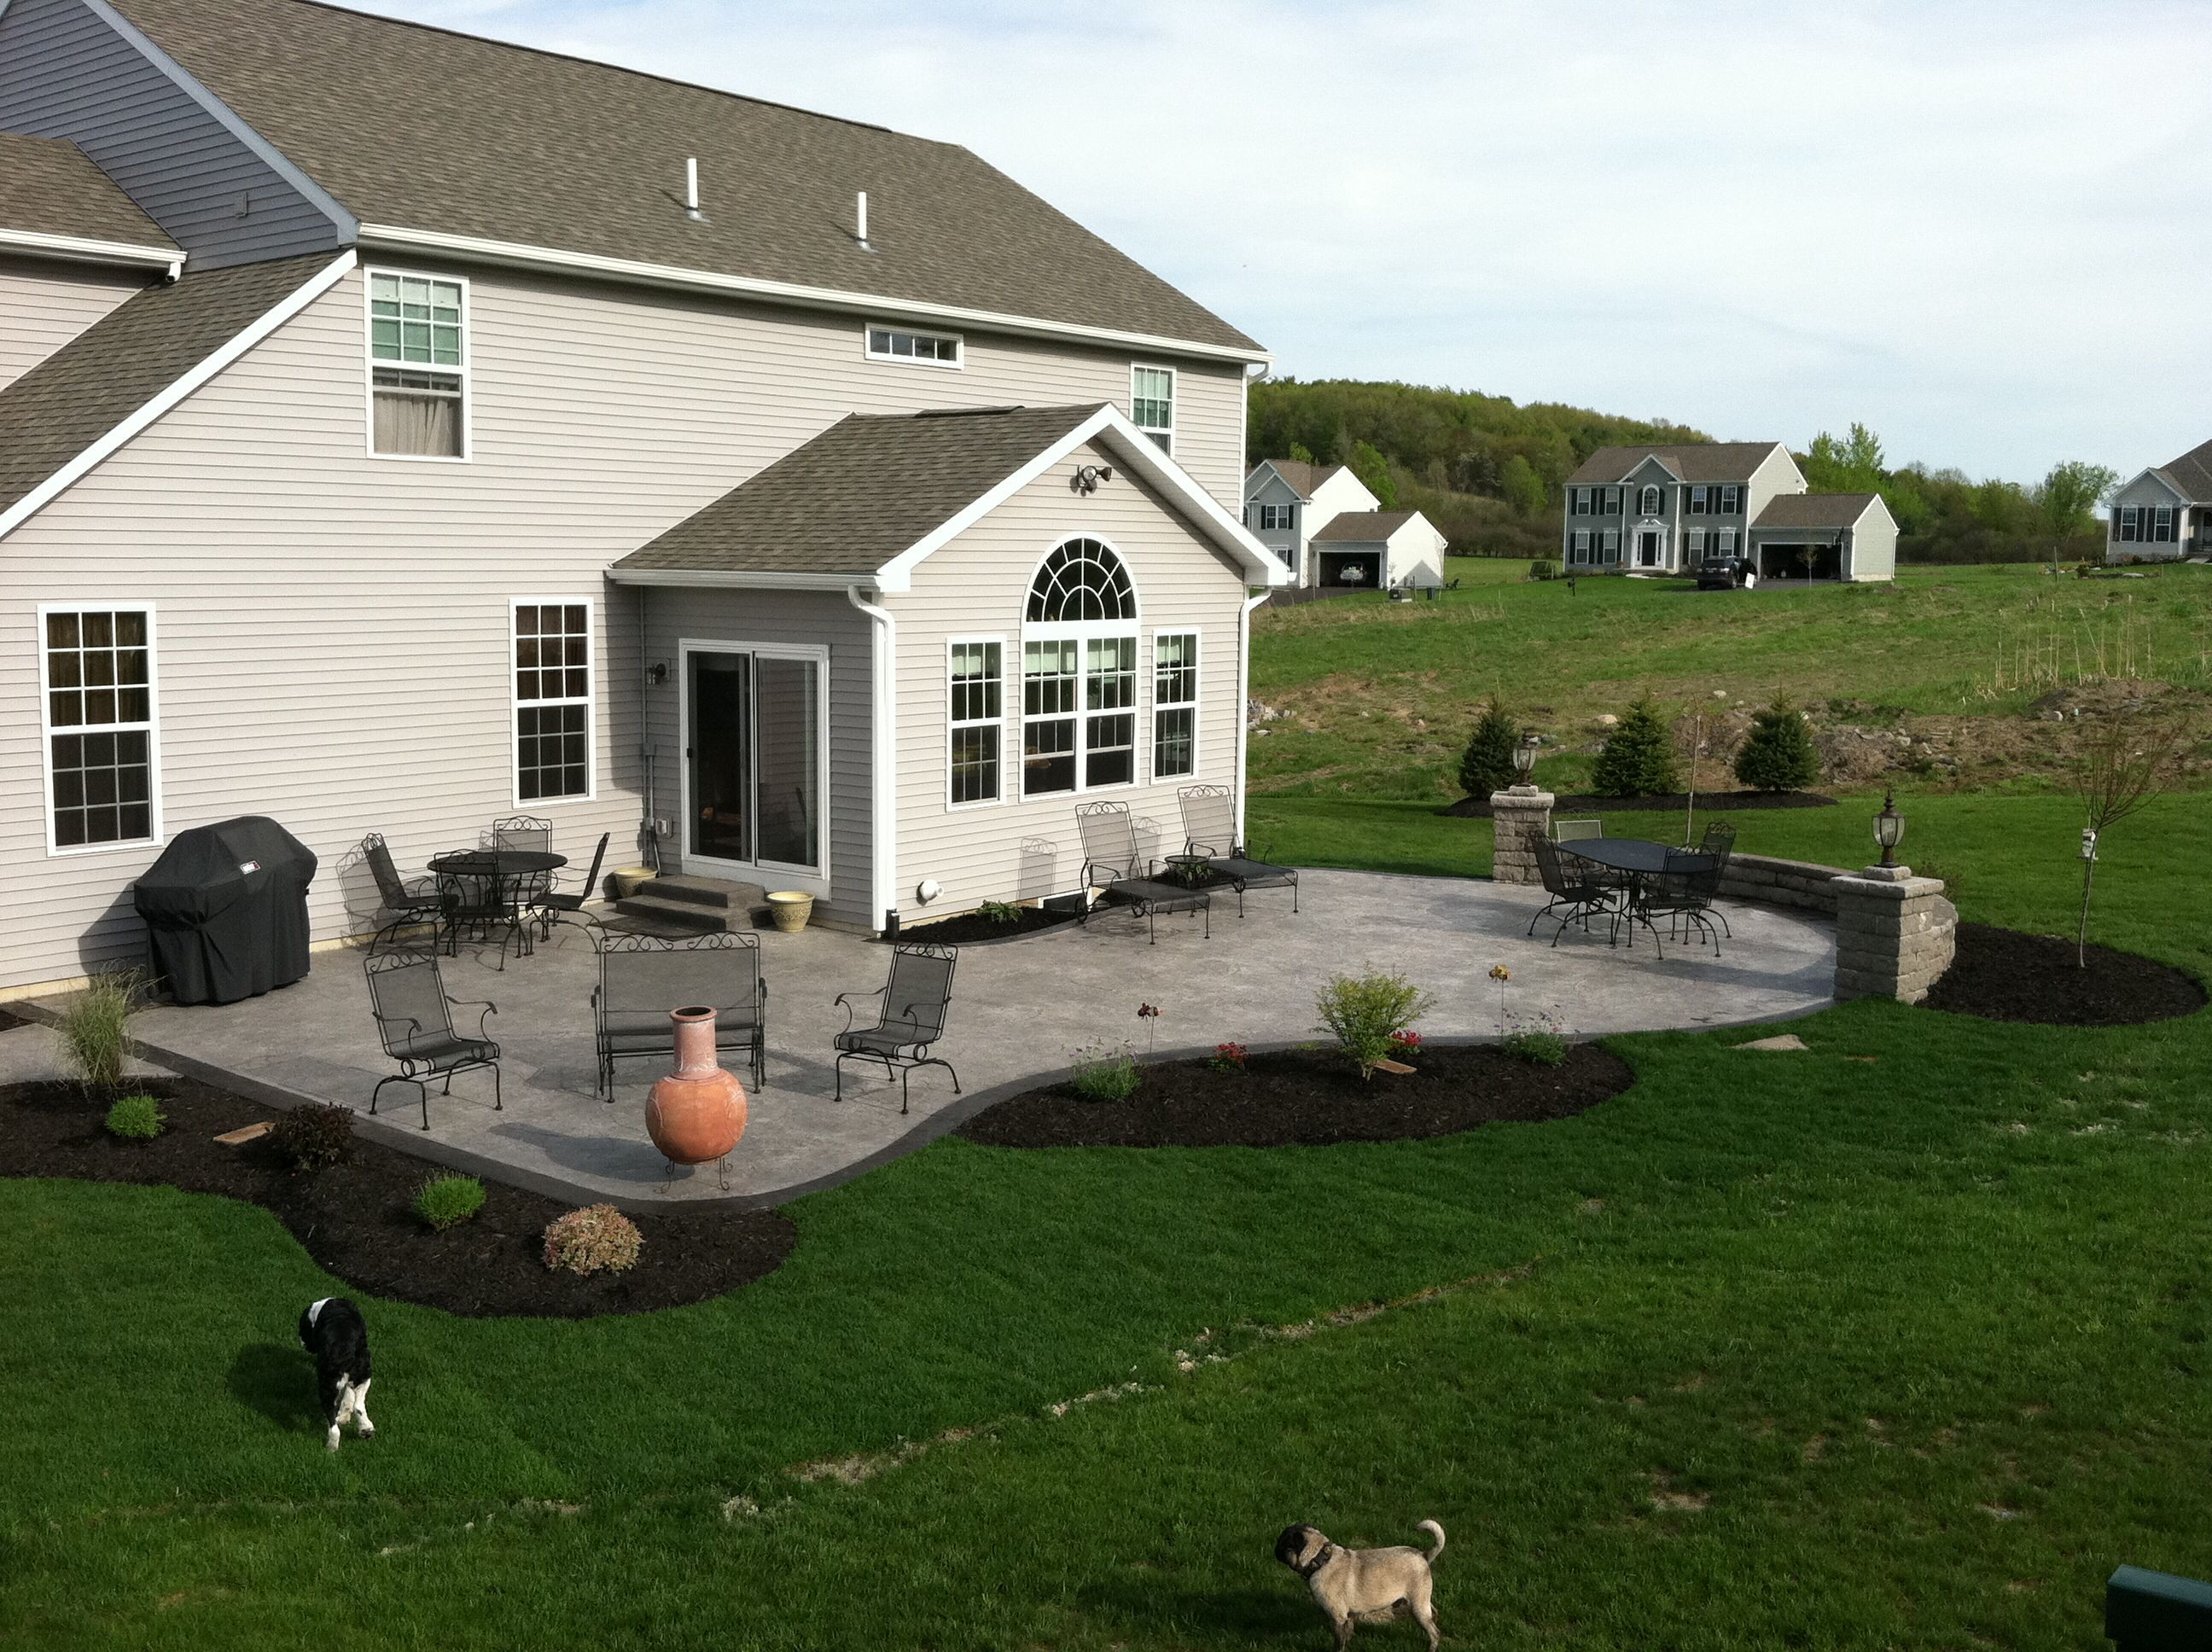 Ideal Size And Shape Would Want A Wall On The Opposite Side Too Outdoor Patio Designs Concrete Patio Designs Concrete Patio